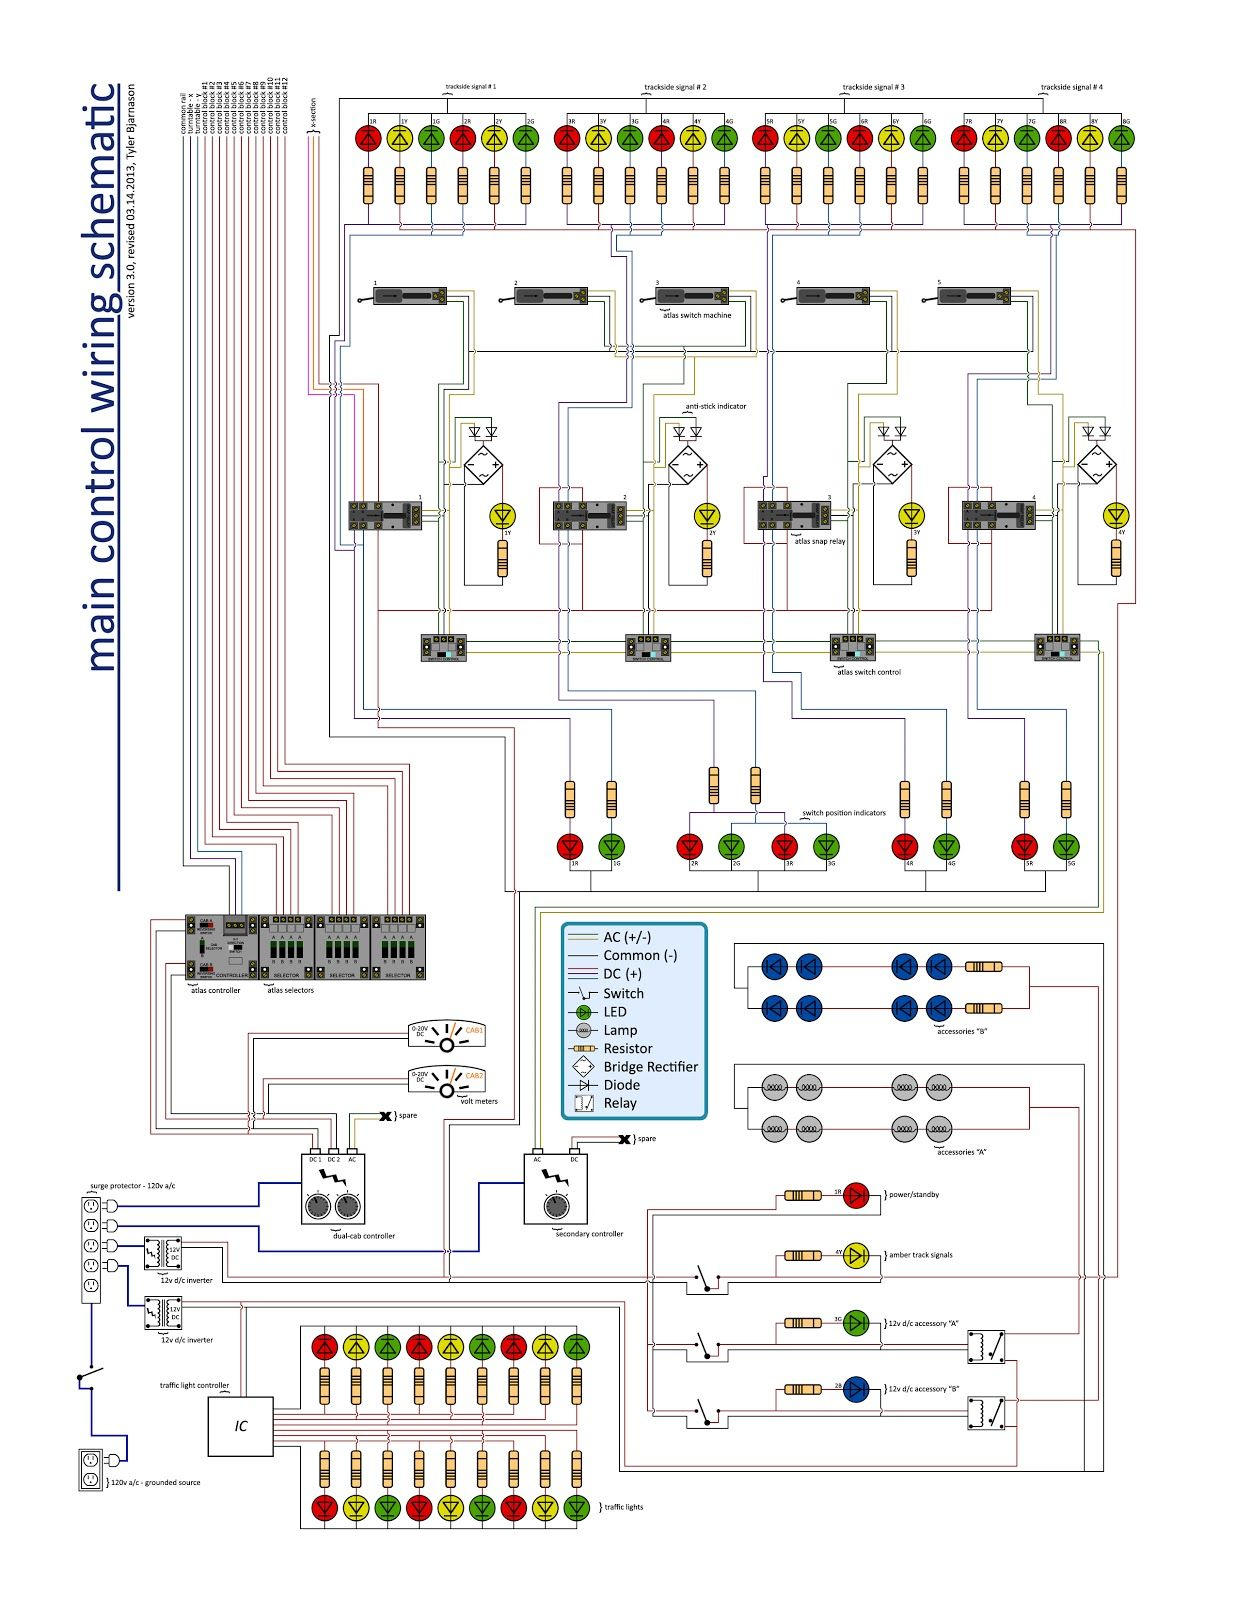 Dcc Train Wiring Diagram For - dcc locomotive wiring diagram ... on